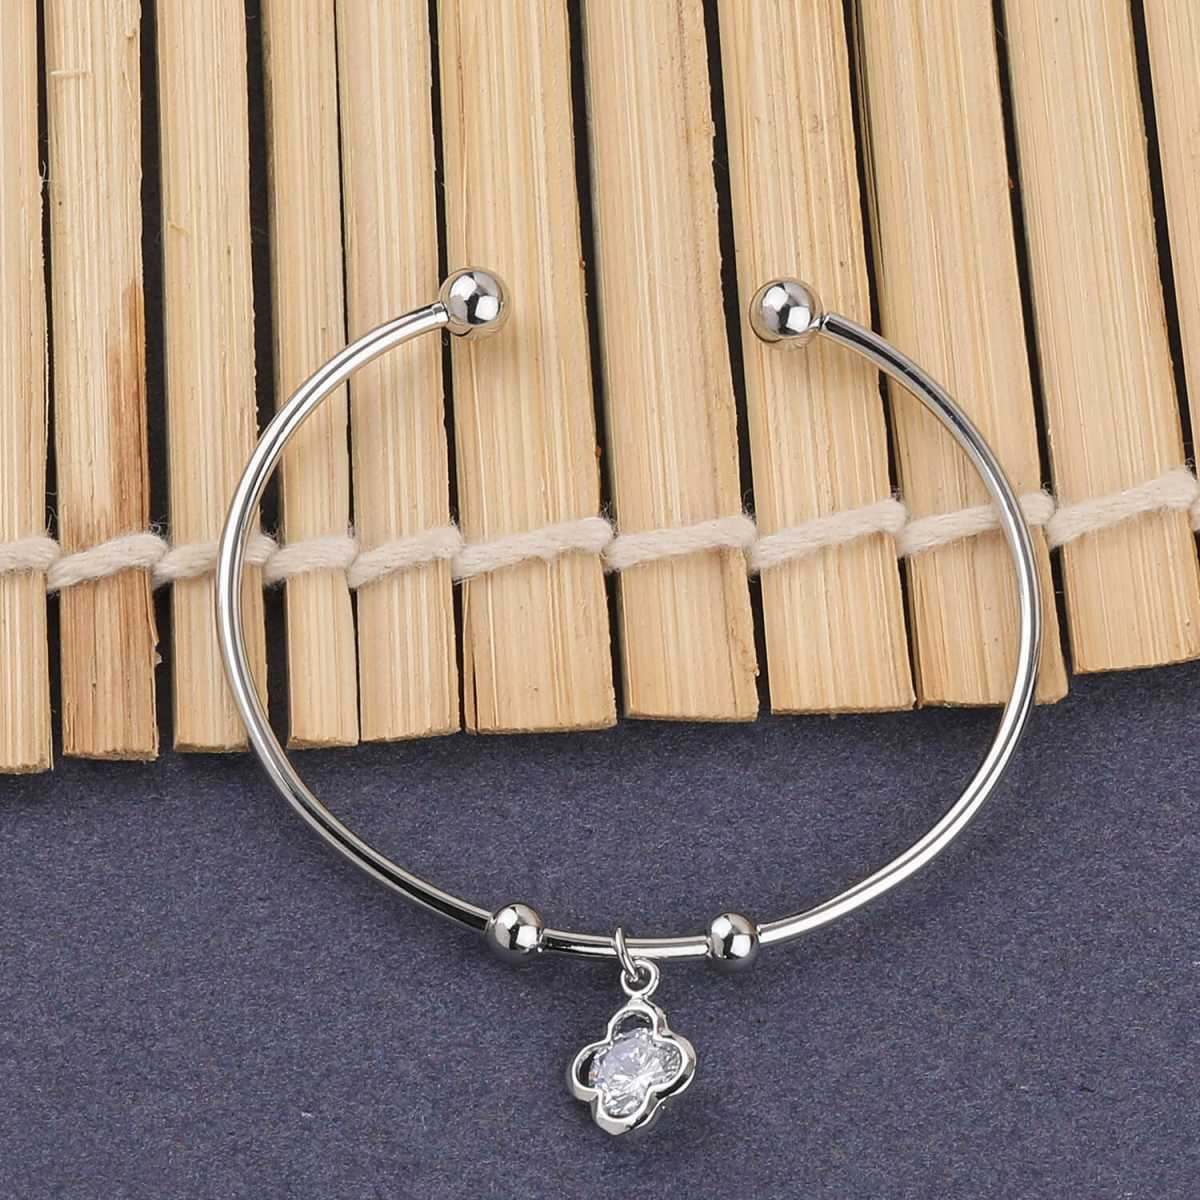 SILVER SHINE Stylish Party Wear Adjustable Bracelet With Diamond For Women Girls